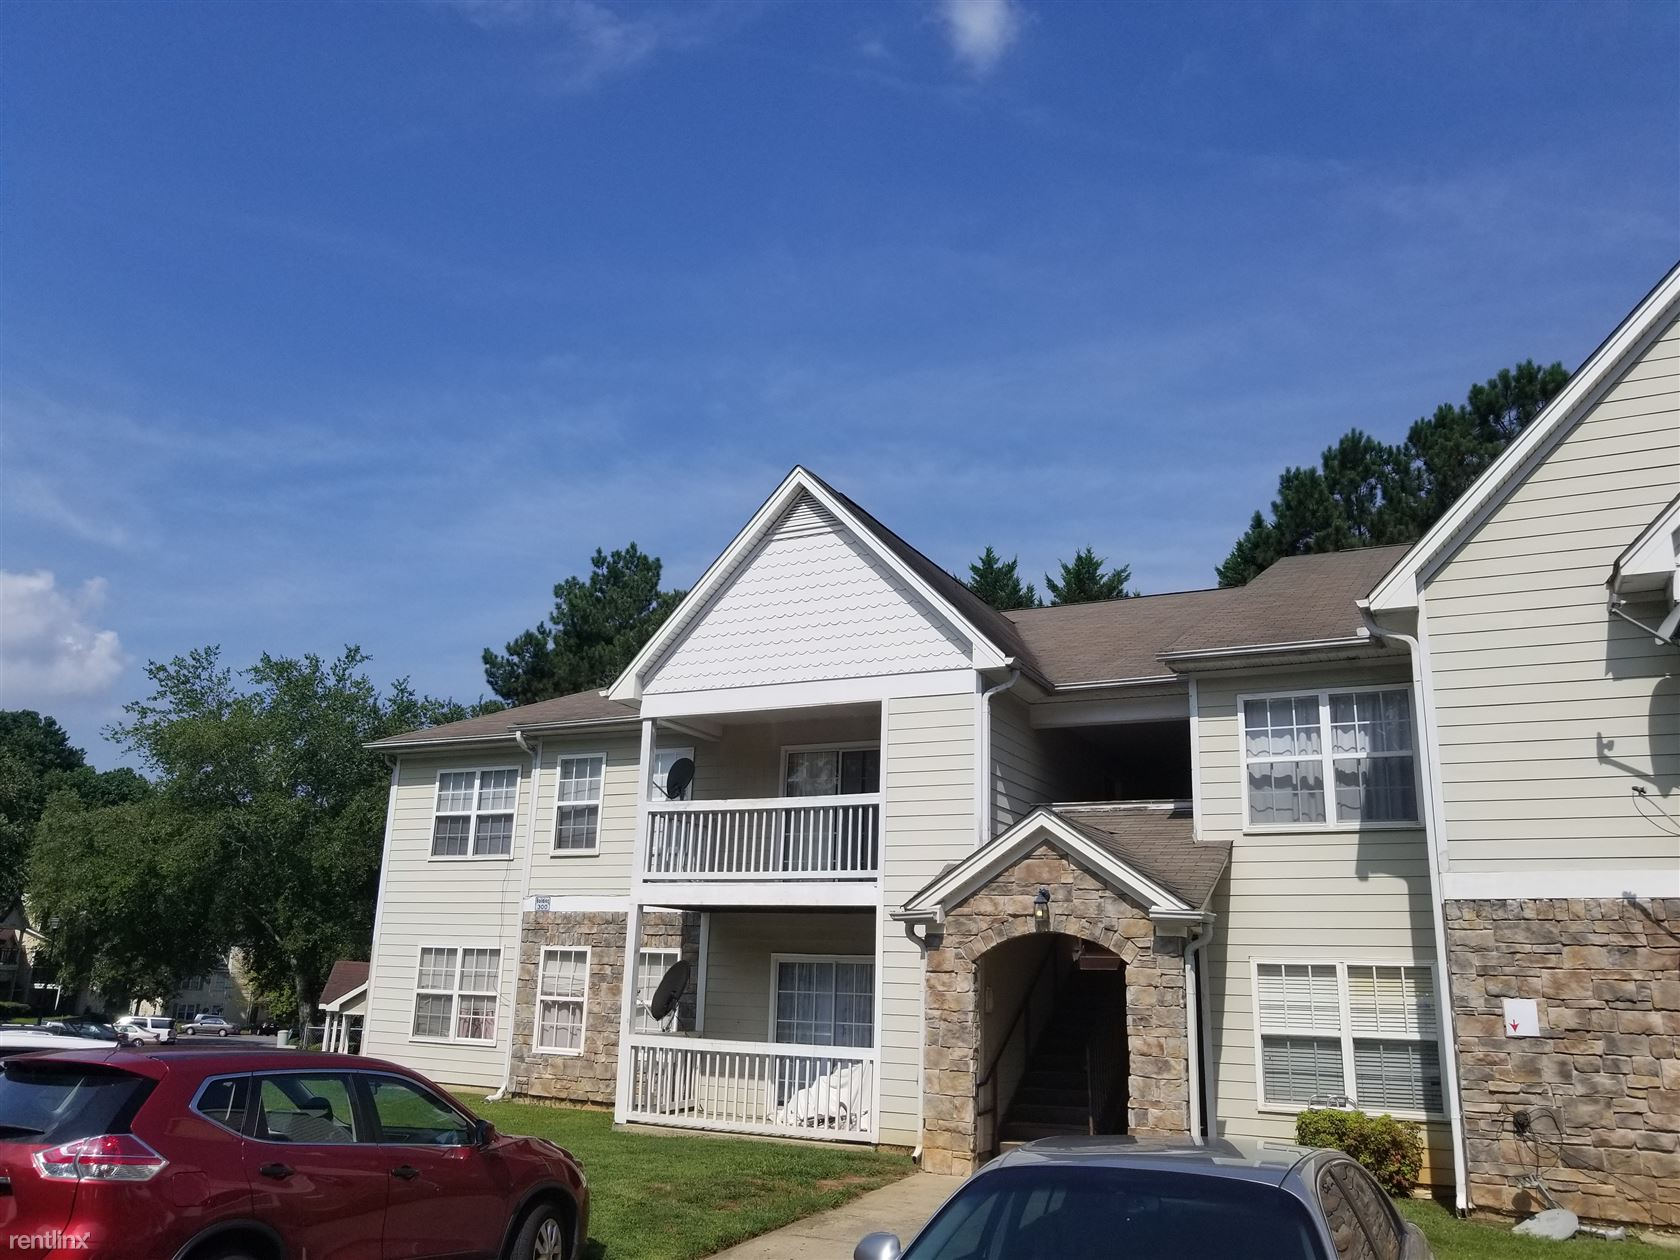 20 Best Apartments In Clarkston, GA (with pictures)!